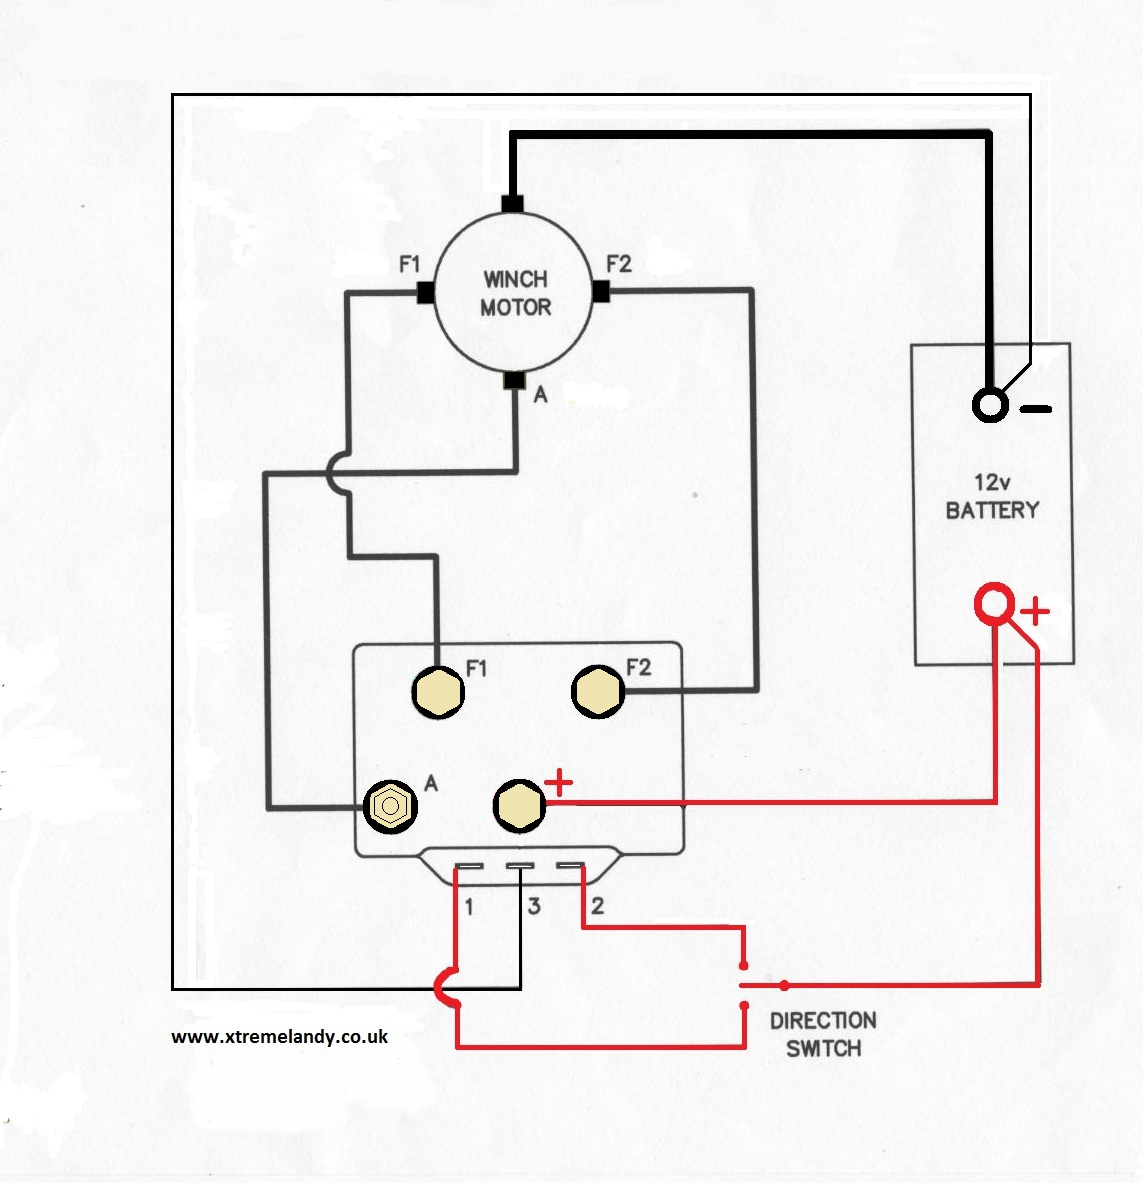 albright wiring diagram image downloadable manuals land rover discovery 3 wiring diagram pdf at aneh.co